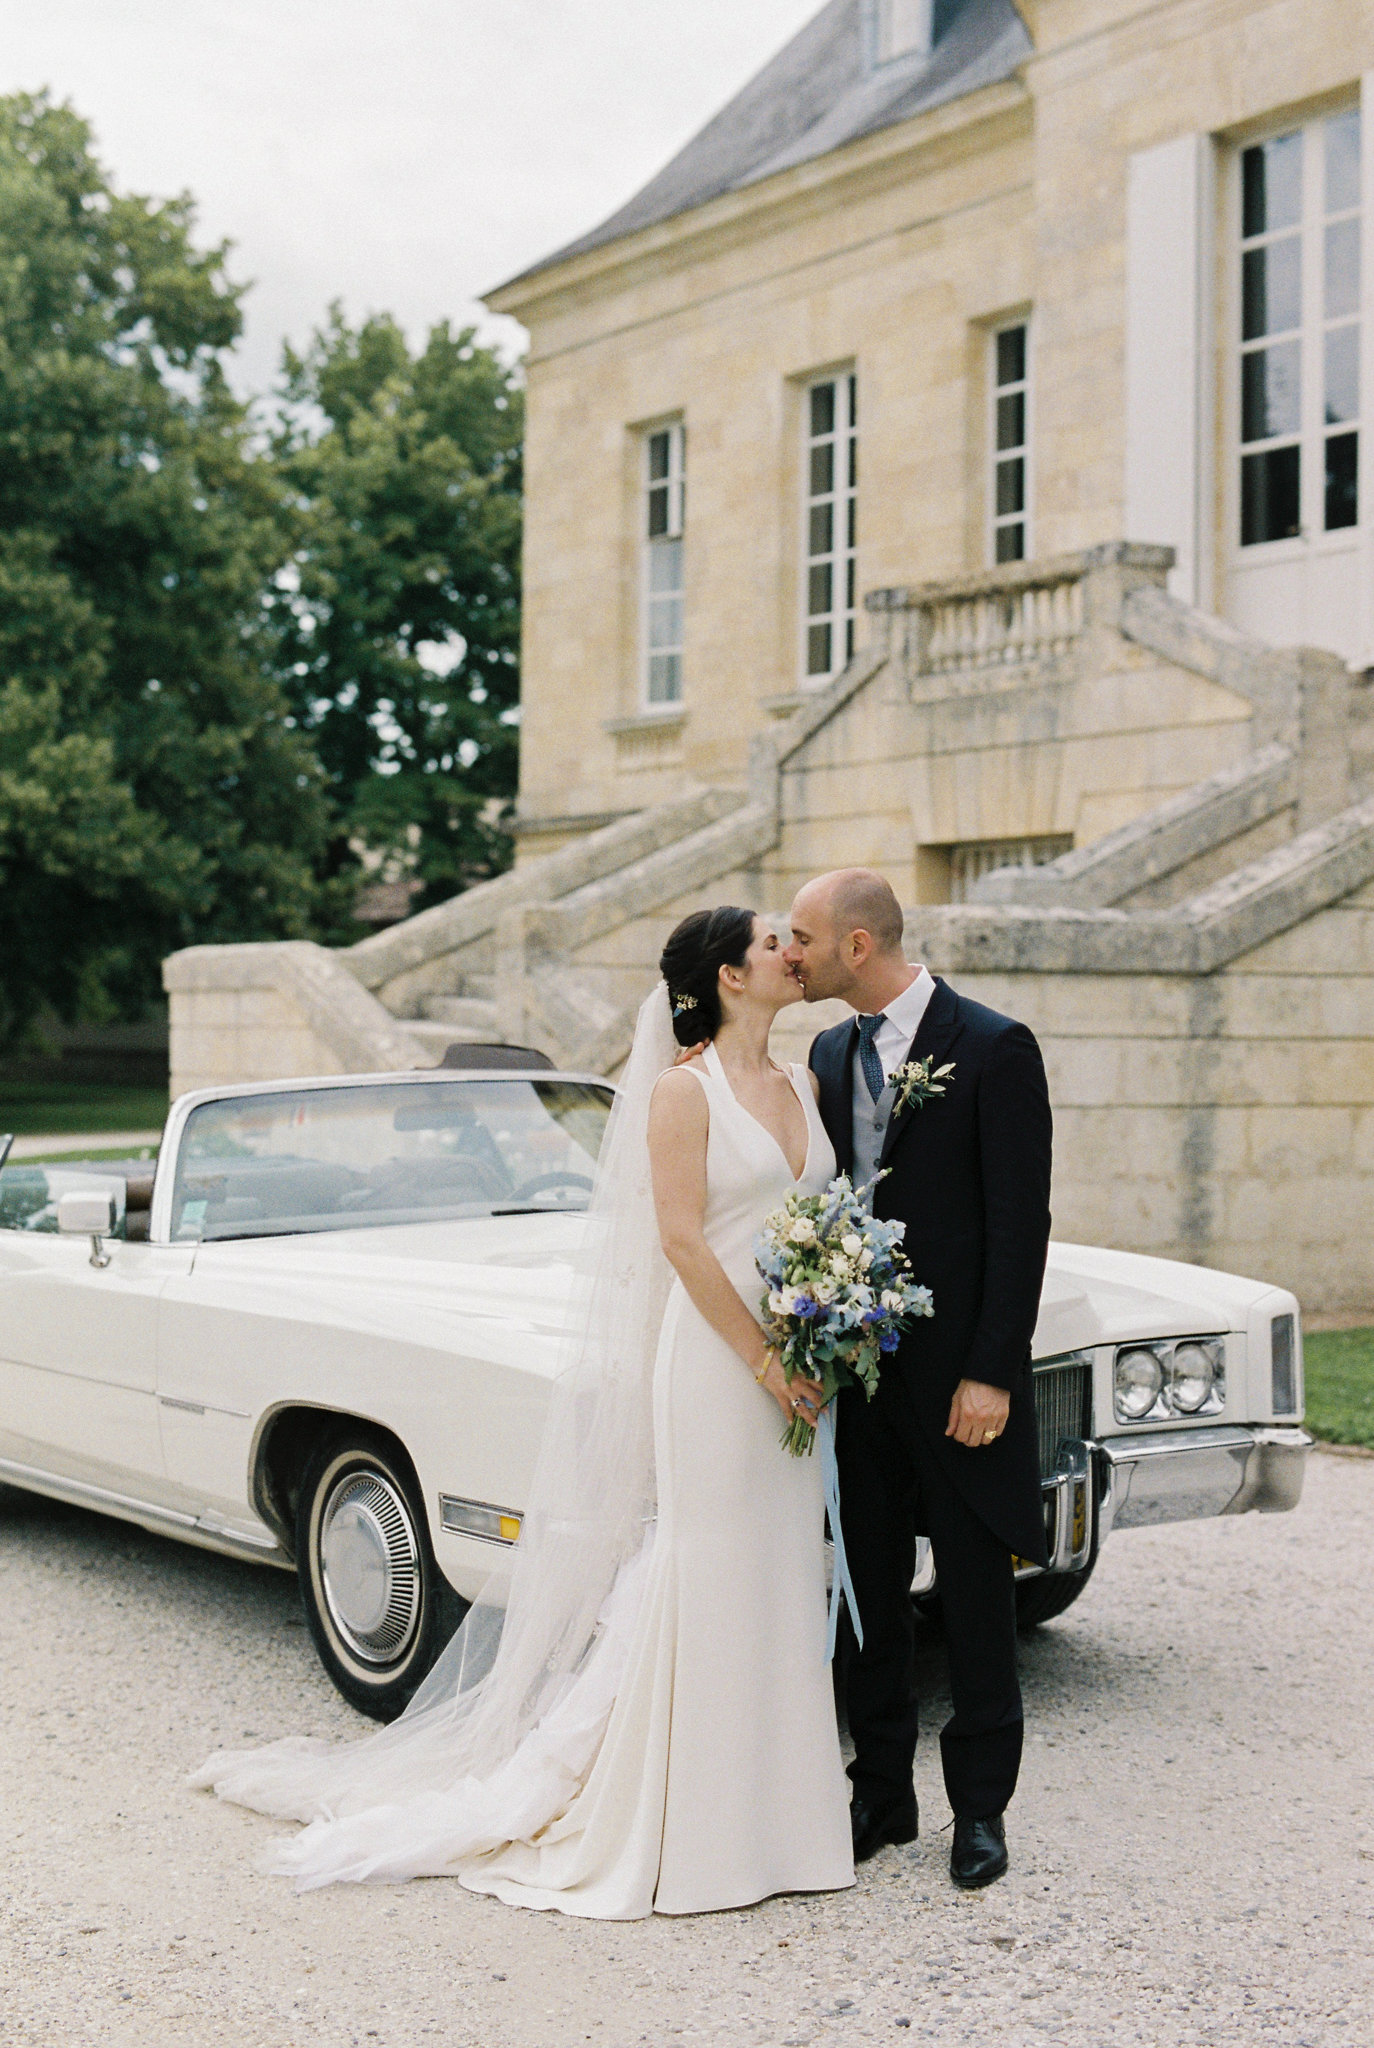 bride and groom kiss in front of white vintage convertible car